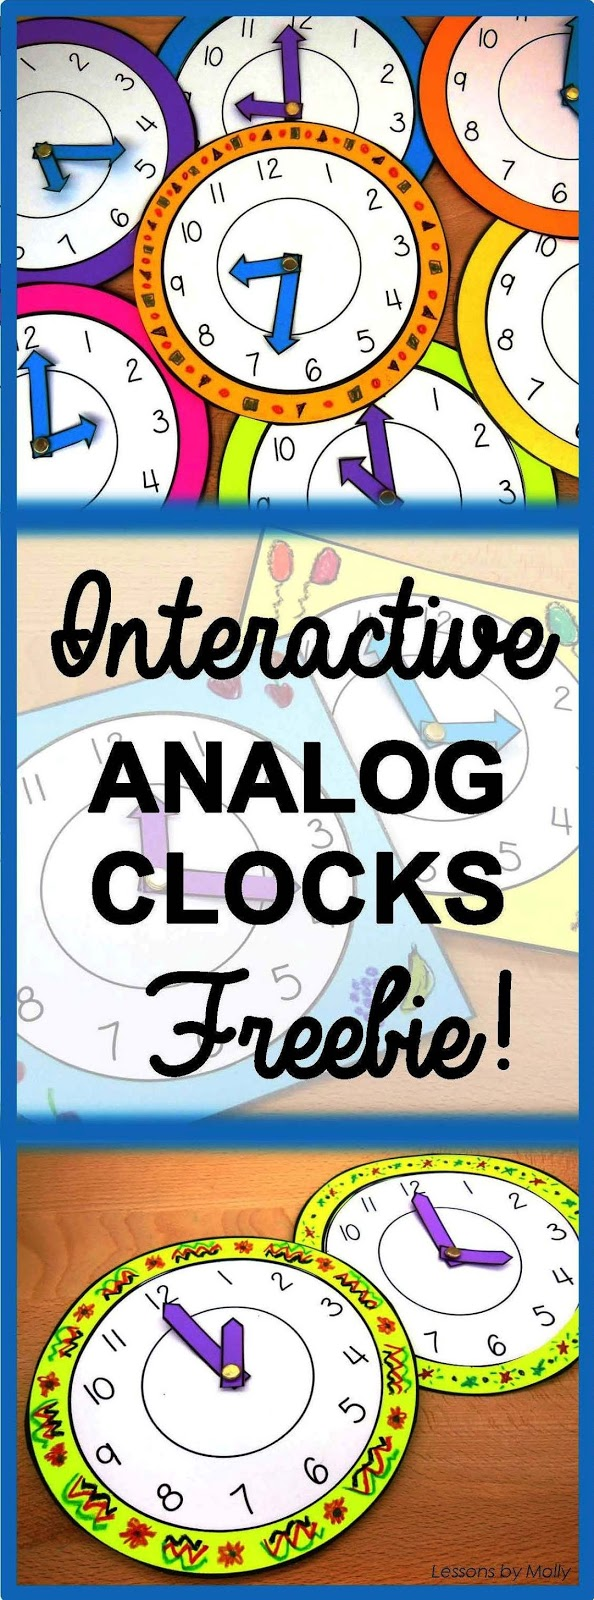 """These analog paper clocks will make learning to tell time fun and engaging for your students!  The moveable hands make these clocks interactive!  Use the clocks when students are learning about the numerals on a face clock or when teaching the difference between the hour hand and the minute hand.  Make each clock unique by having the students decorate the frames with crayons or magic markers.  Display the clocks on a bulletin board with a catchy phrase such as, """"It's TIME for a New Year.""""  FREE!"""